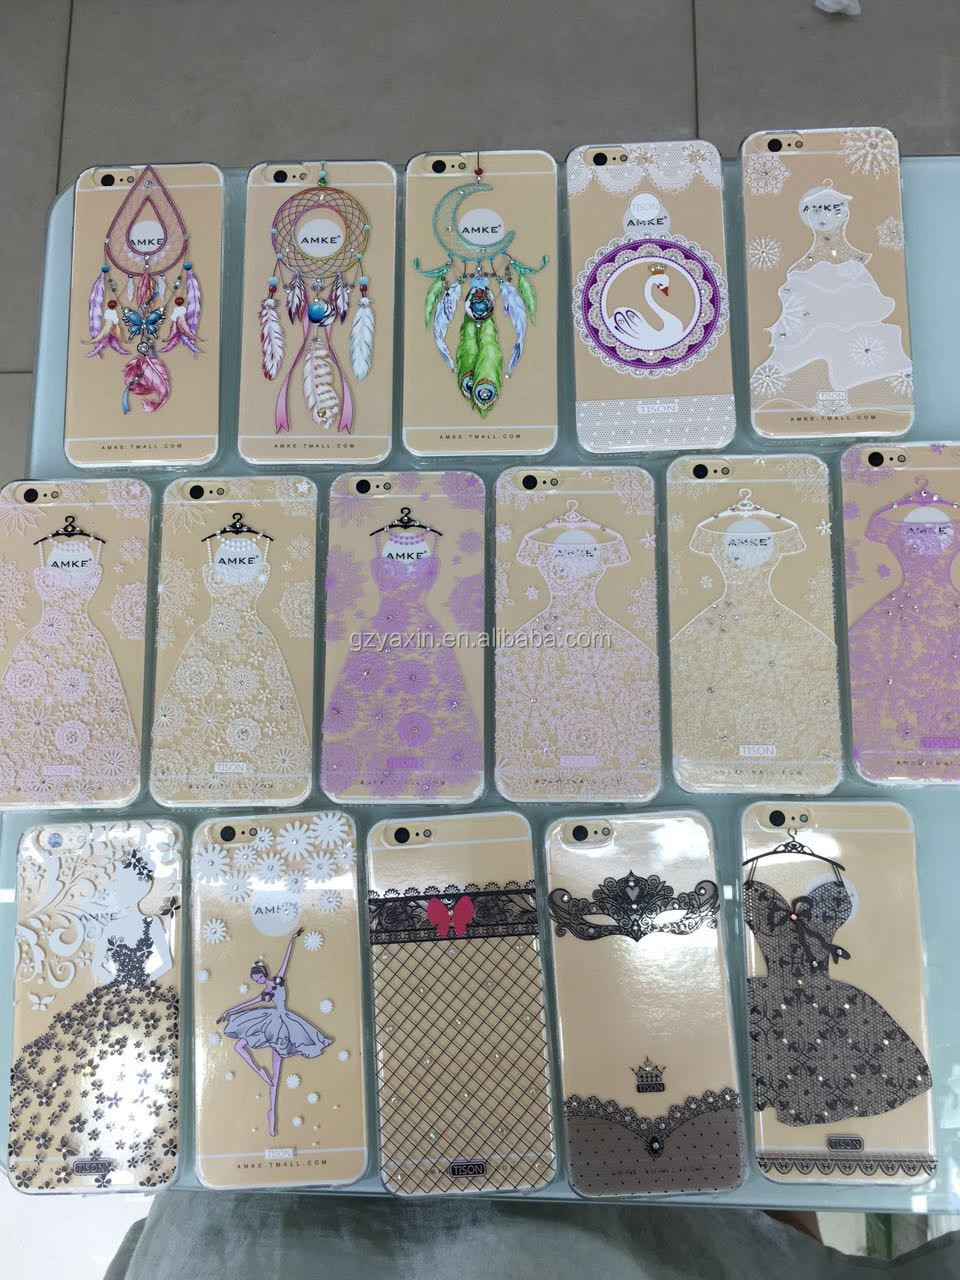 Promotion Price Customized Transparent TPU Soft Printed Case for Iphone6 6s & Samsung Smartphone